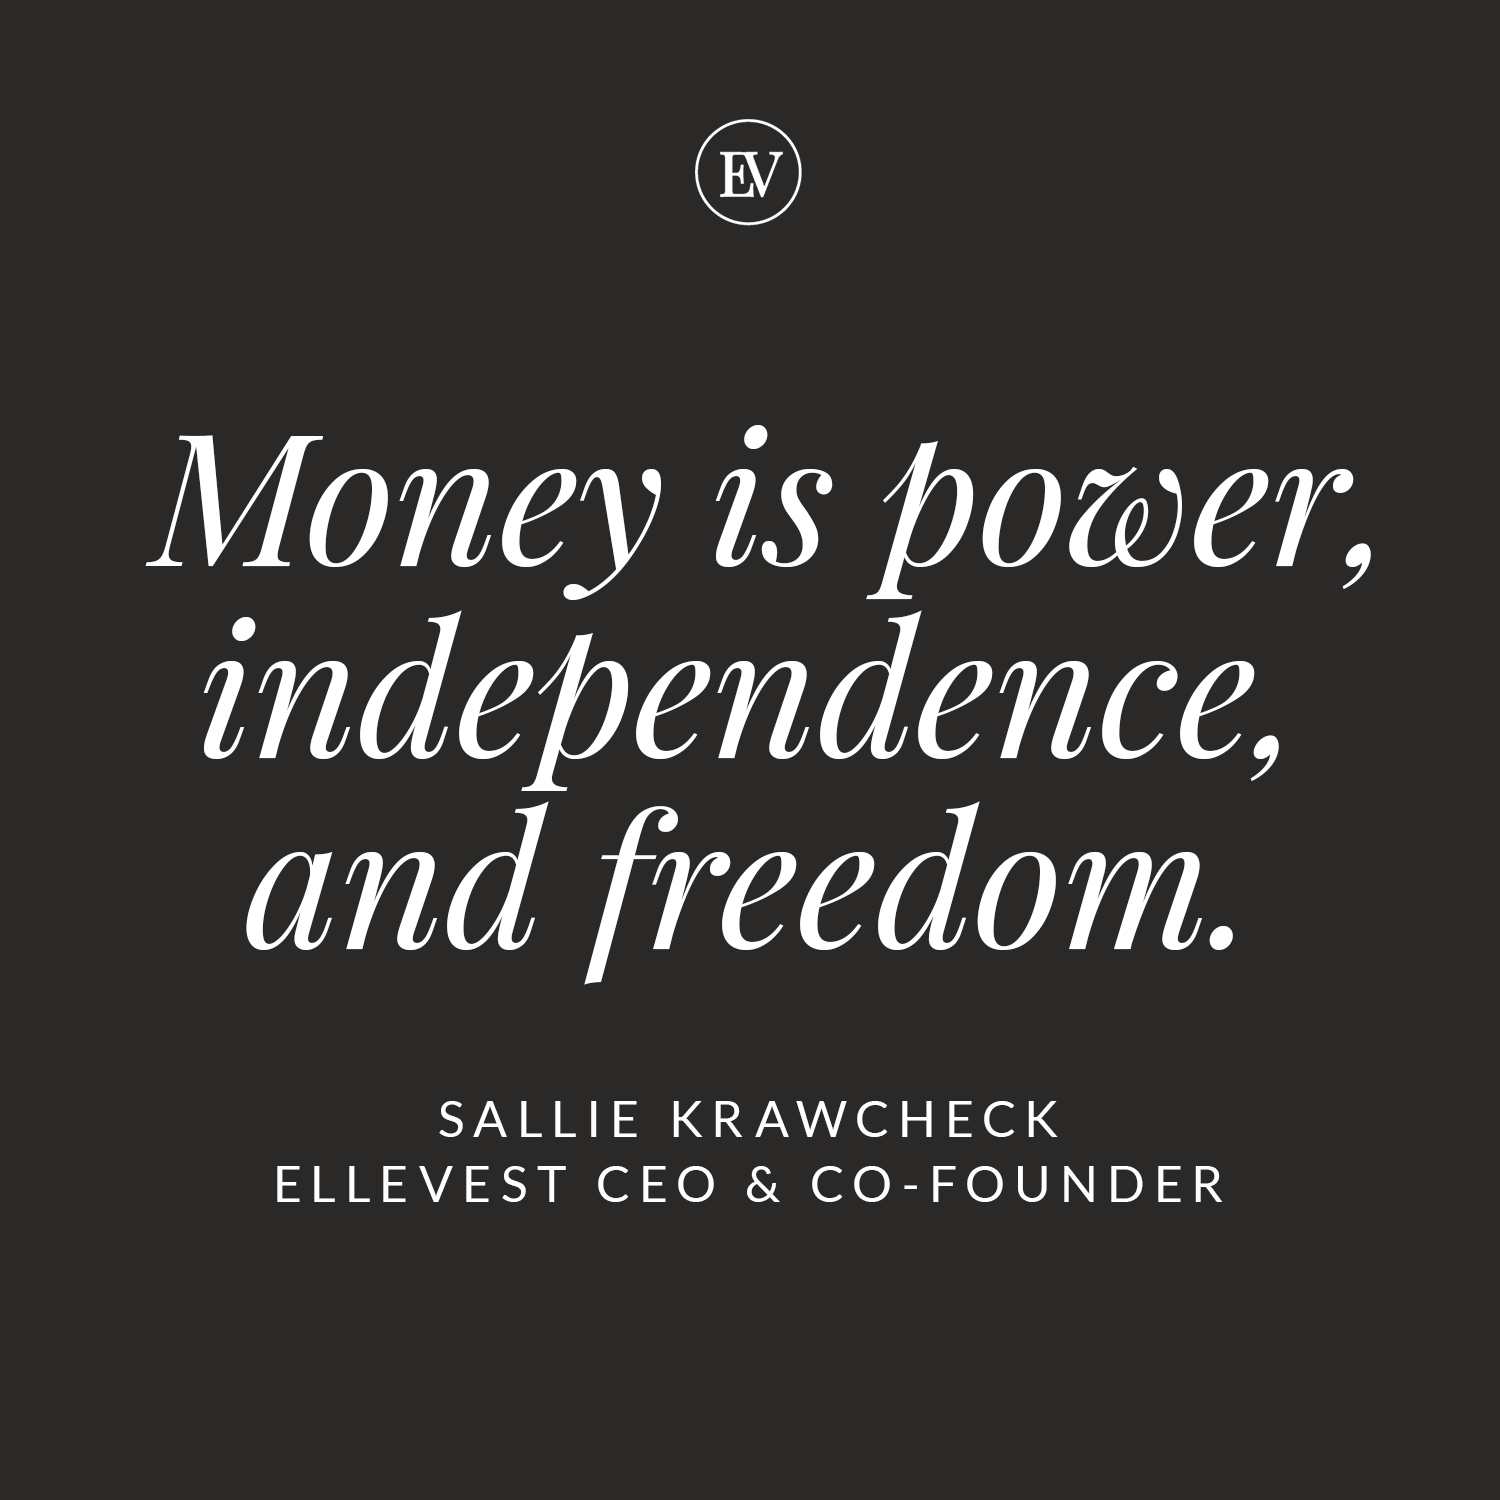 Money is power, independence and freedom.